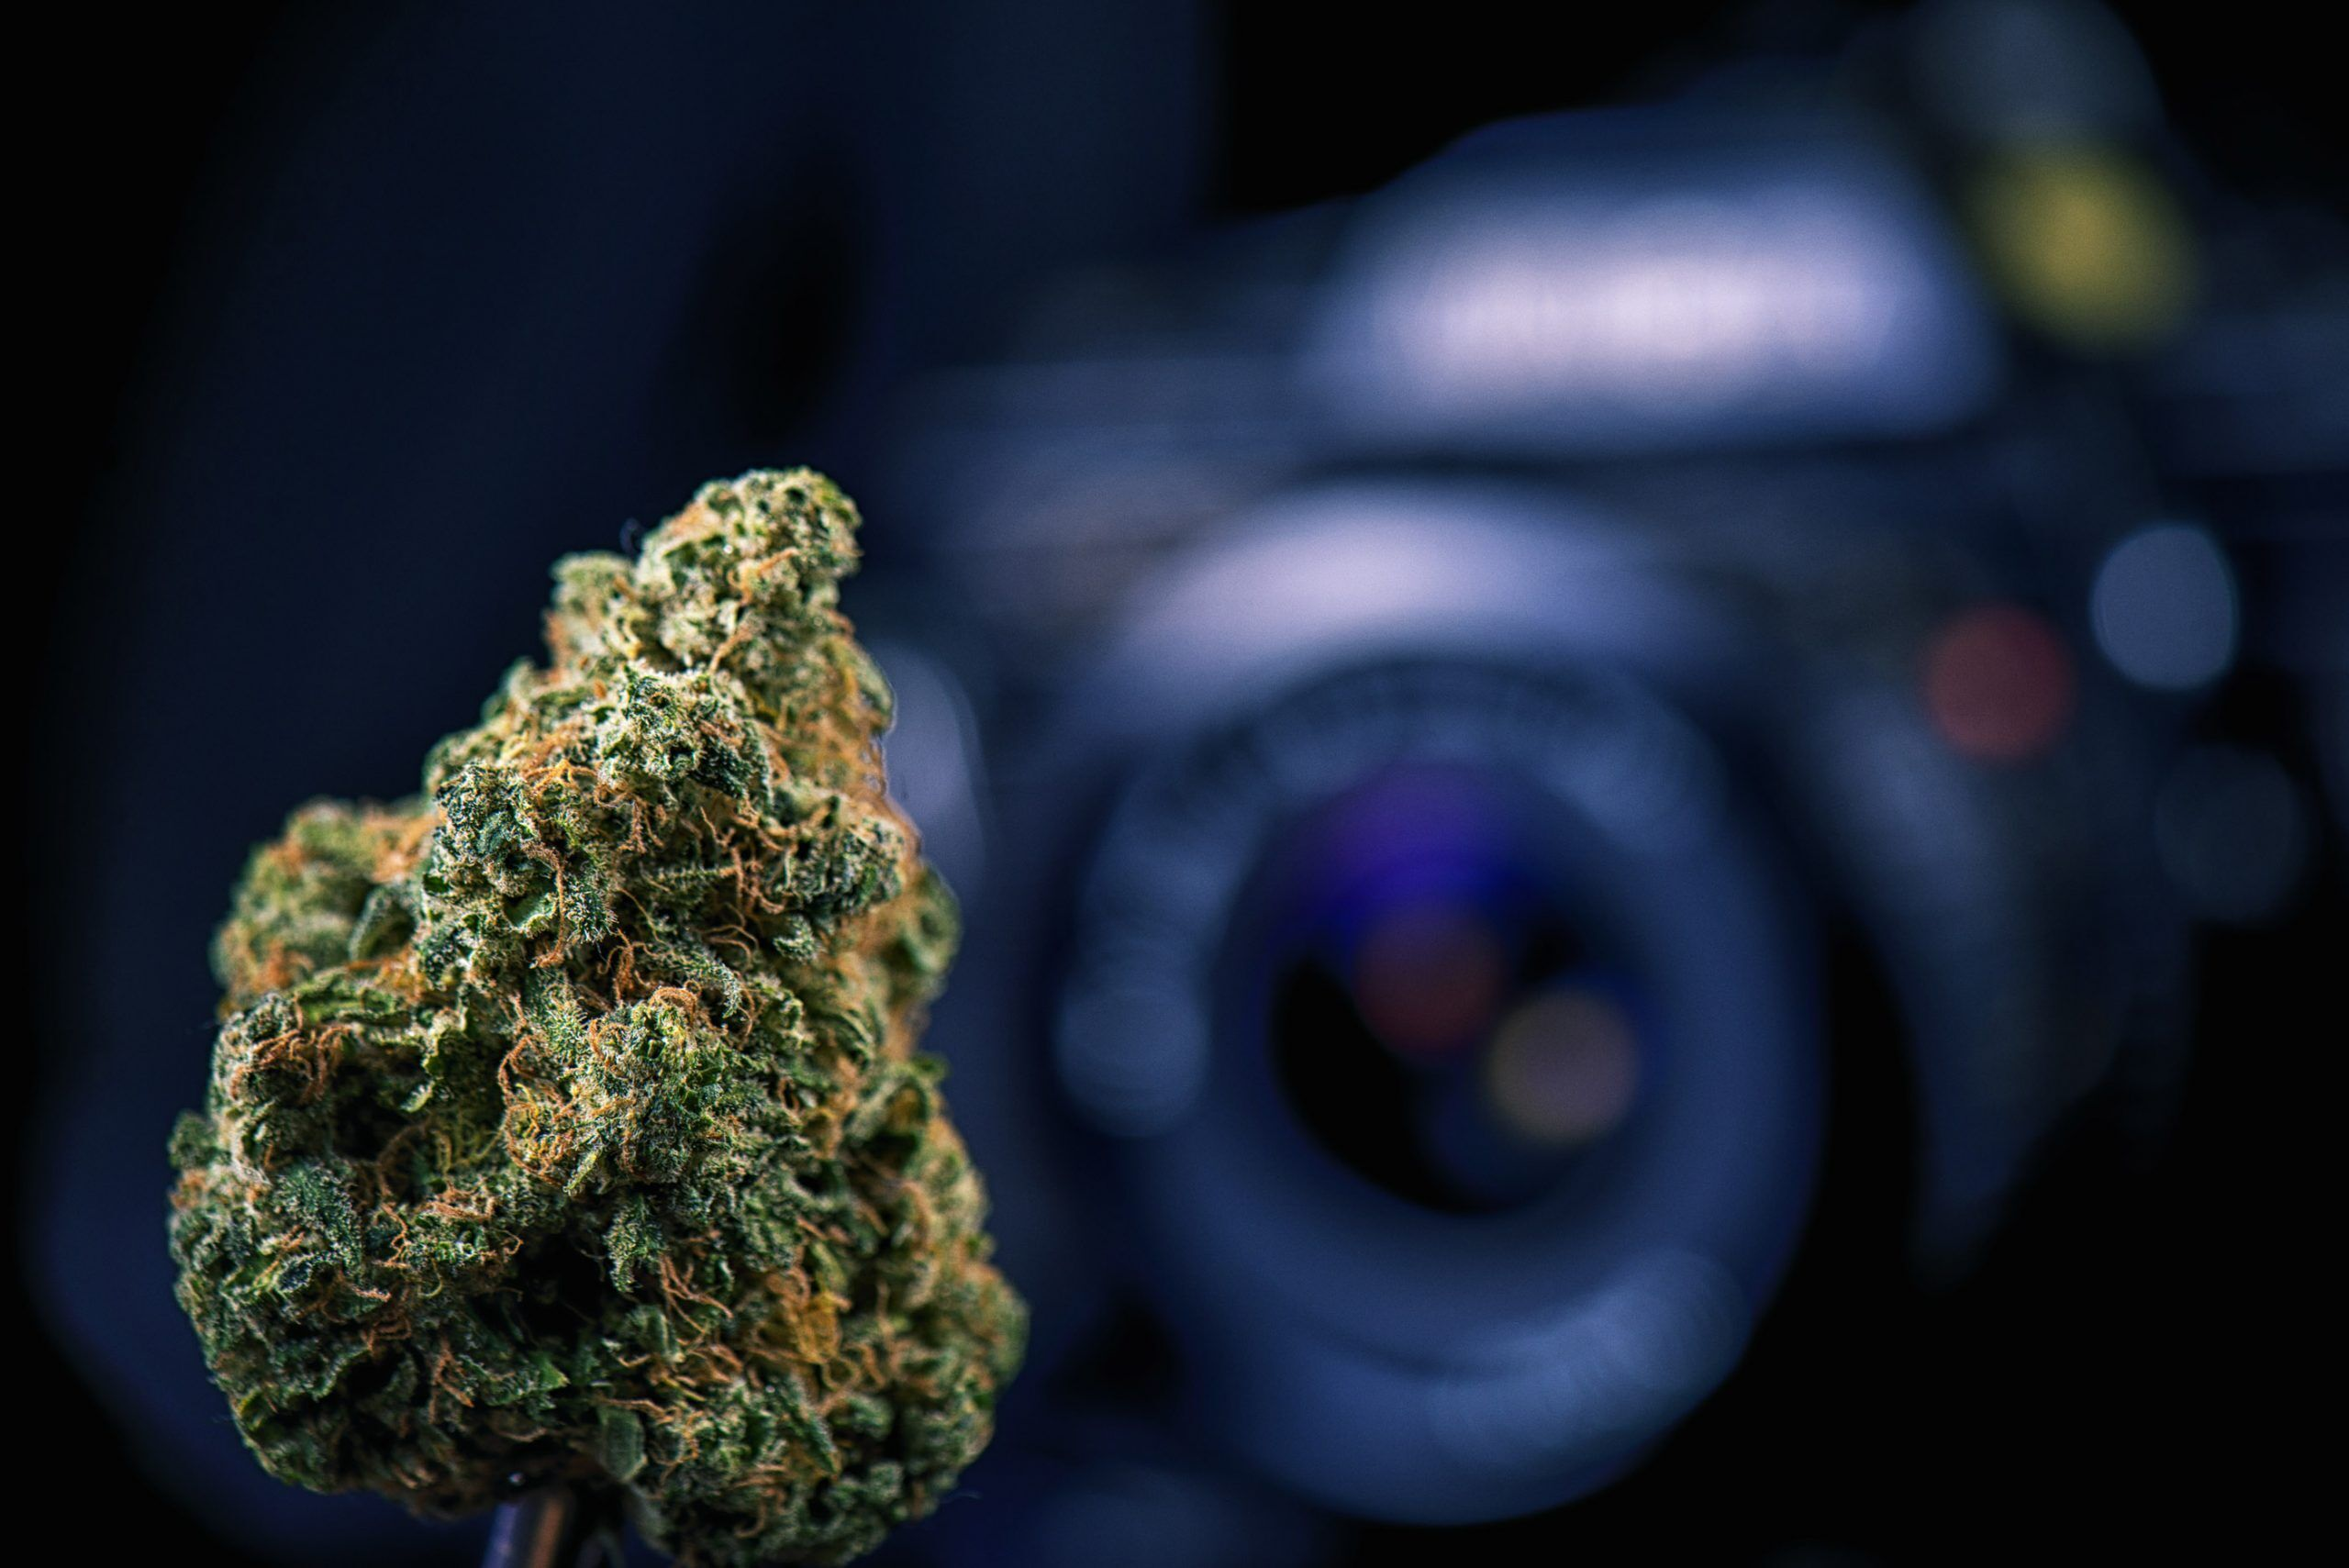 cannabis photography photo contest Dried cannabis bud in front of digital camera lens - marijuana photography concept